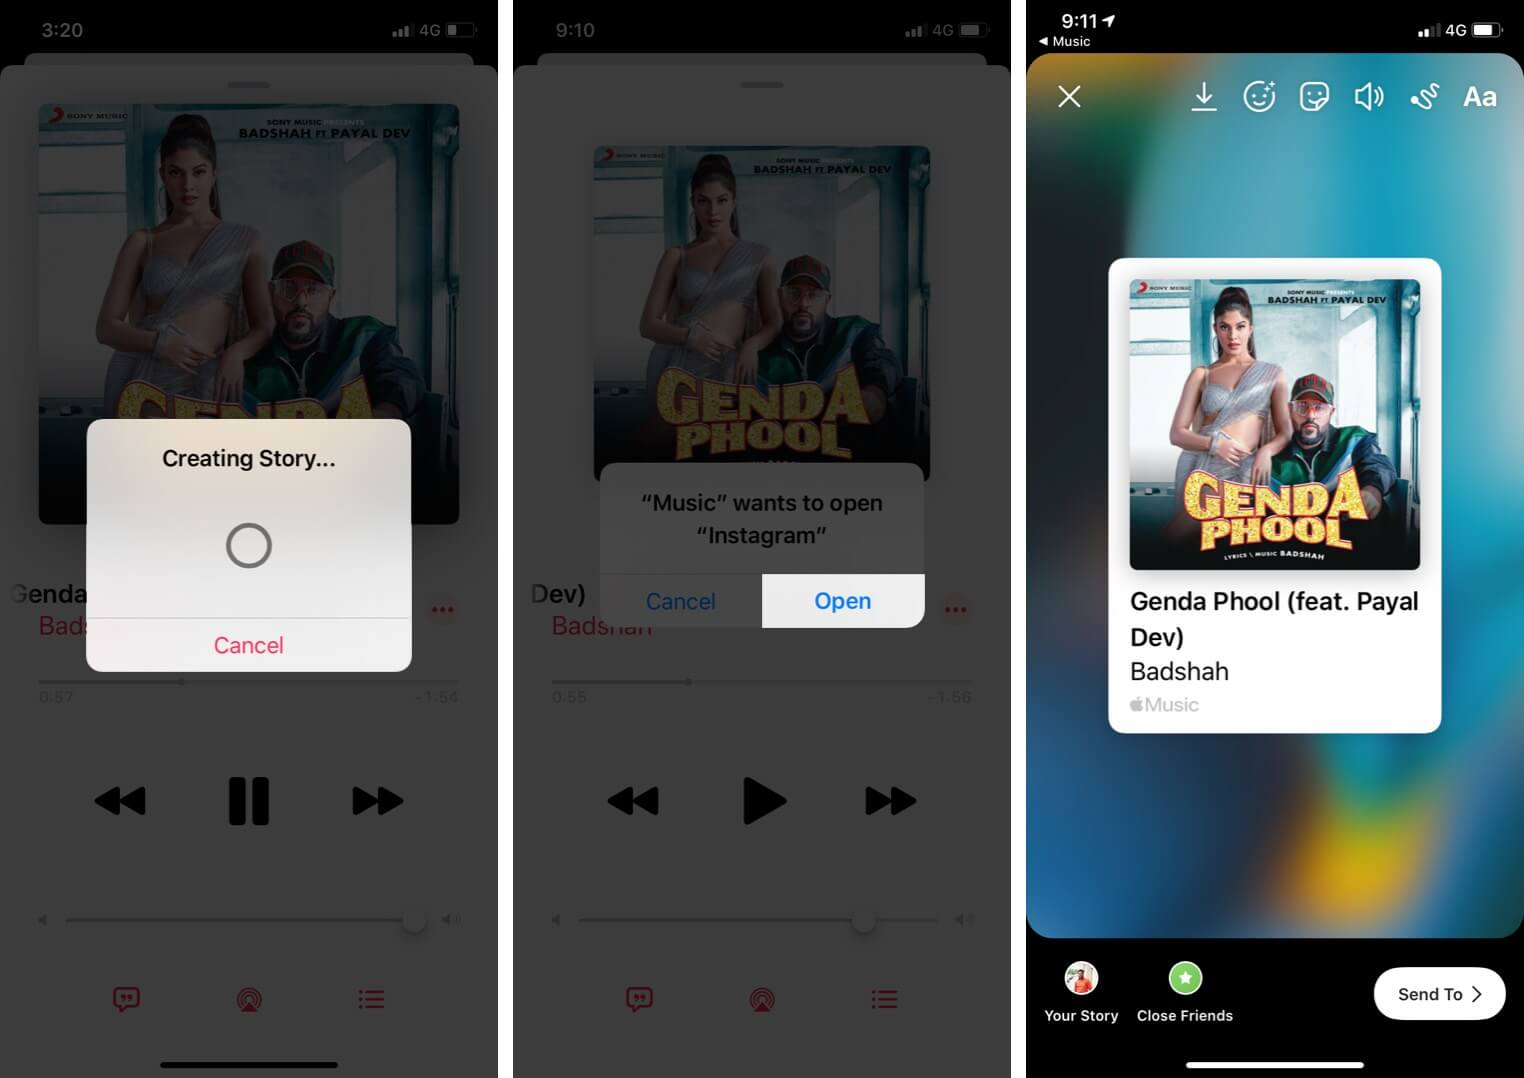 Share Apple Music Songs to Instagram Stories on iPhone